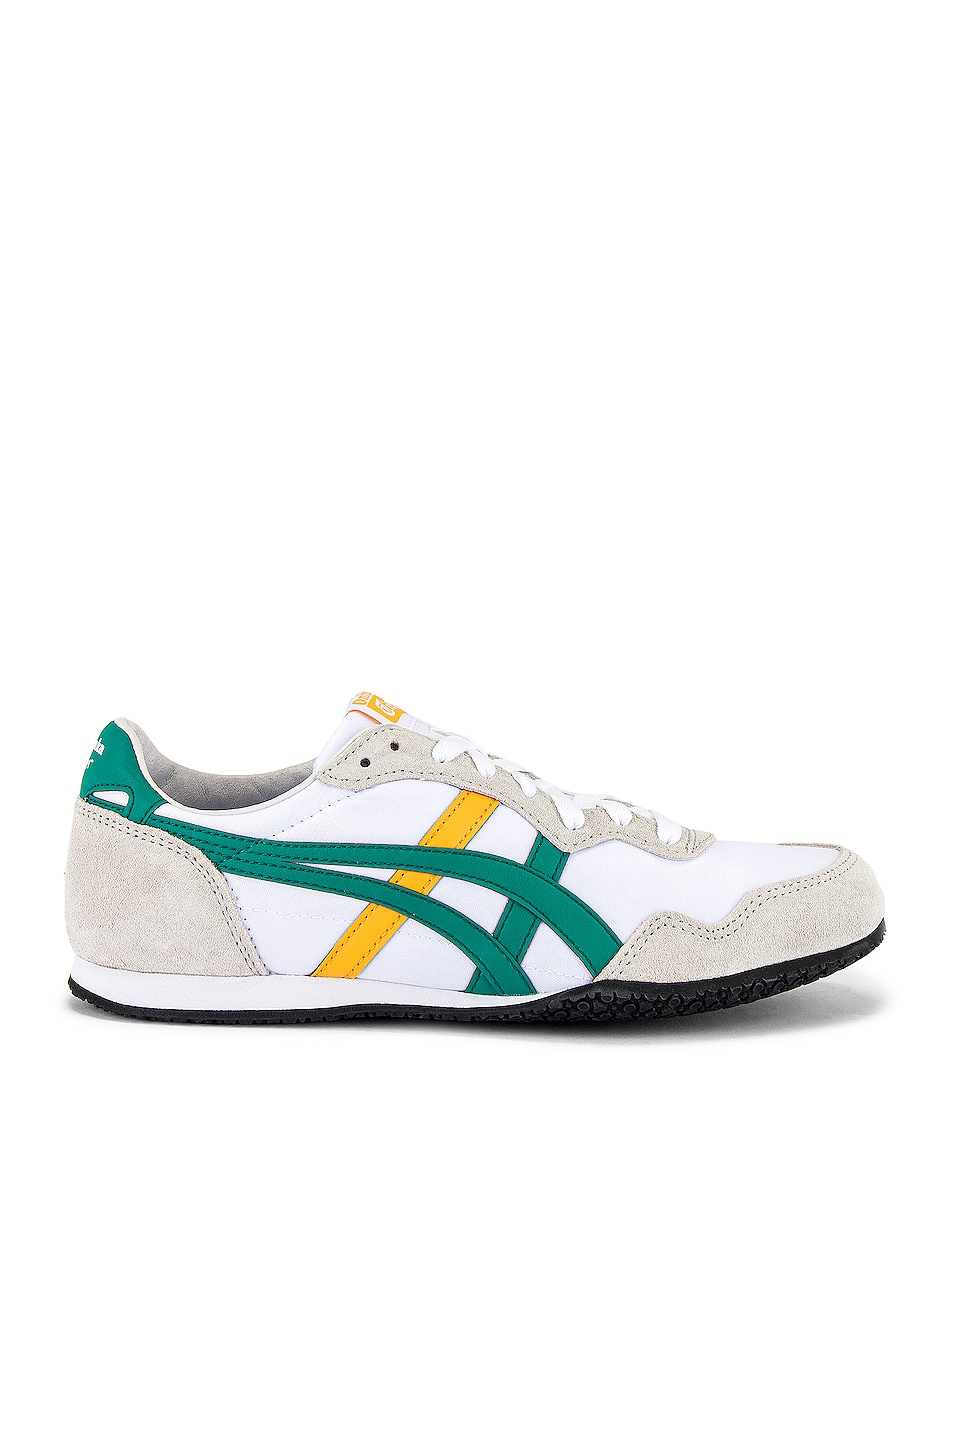 Image 2 of Onitsuka Tiger Serrano in White & Jelly Bean